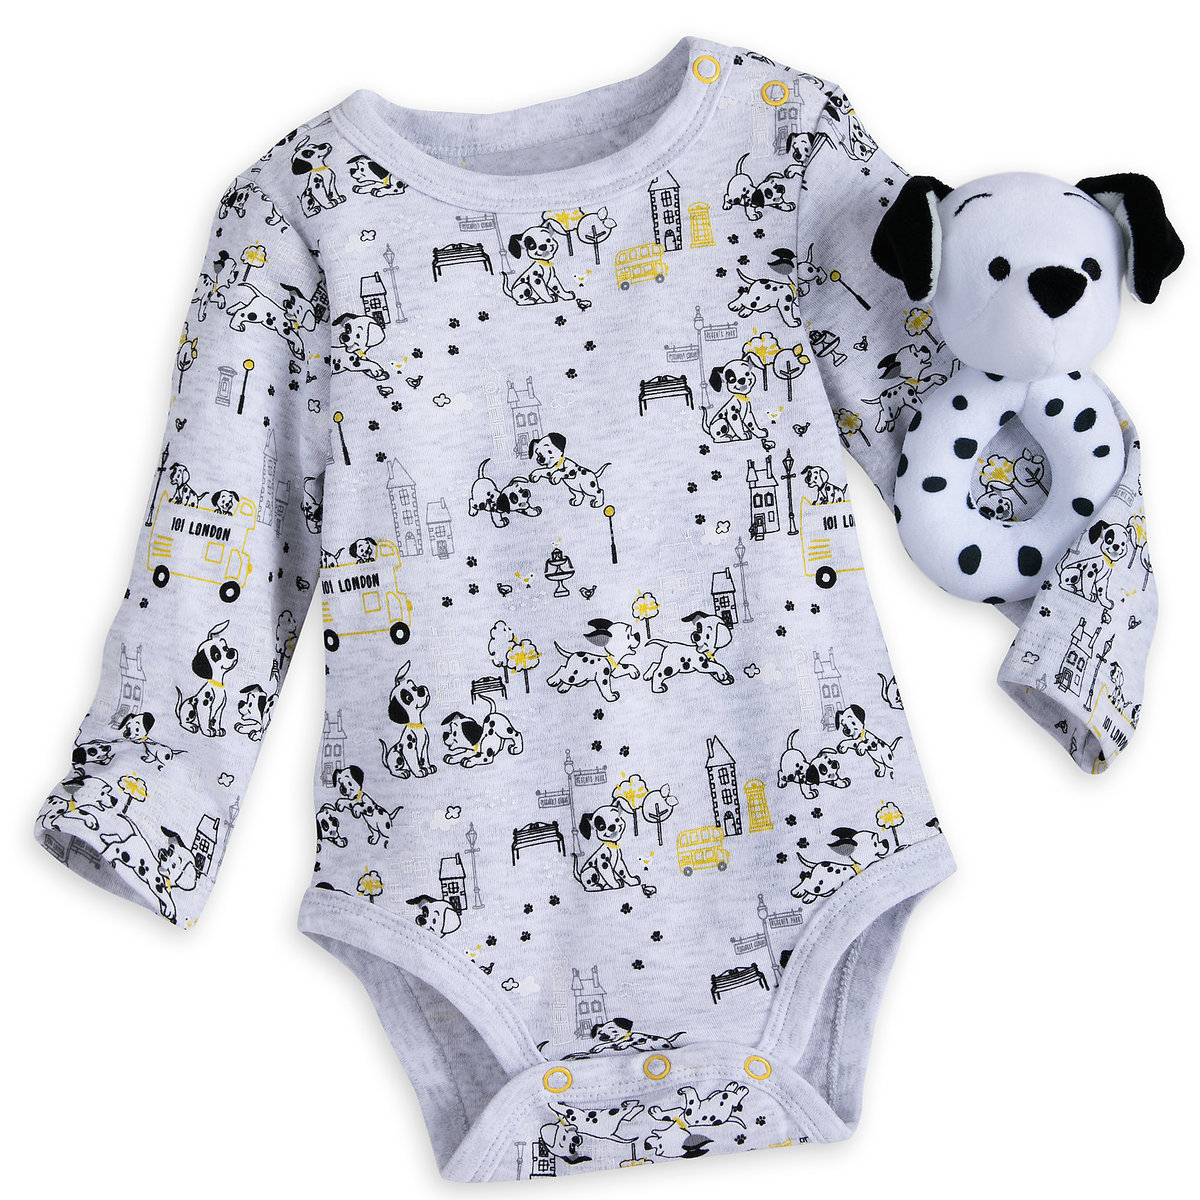 f841fb42f Product Image of 101 Dalmatians Gift Set for Baby # 1